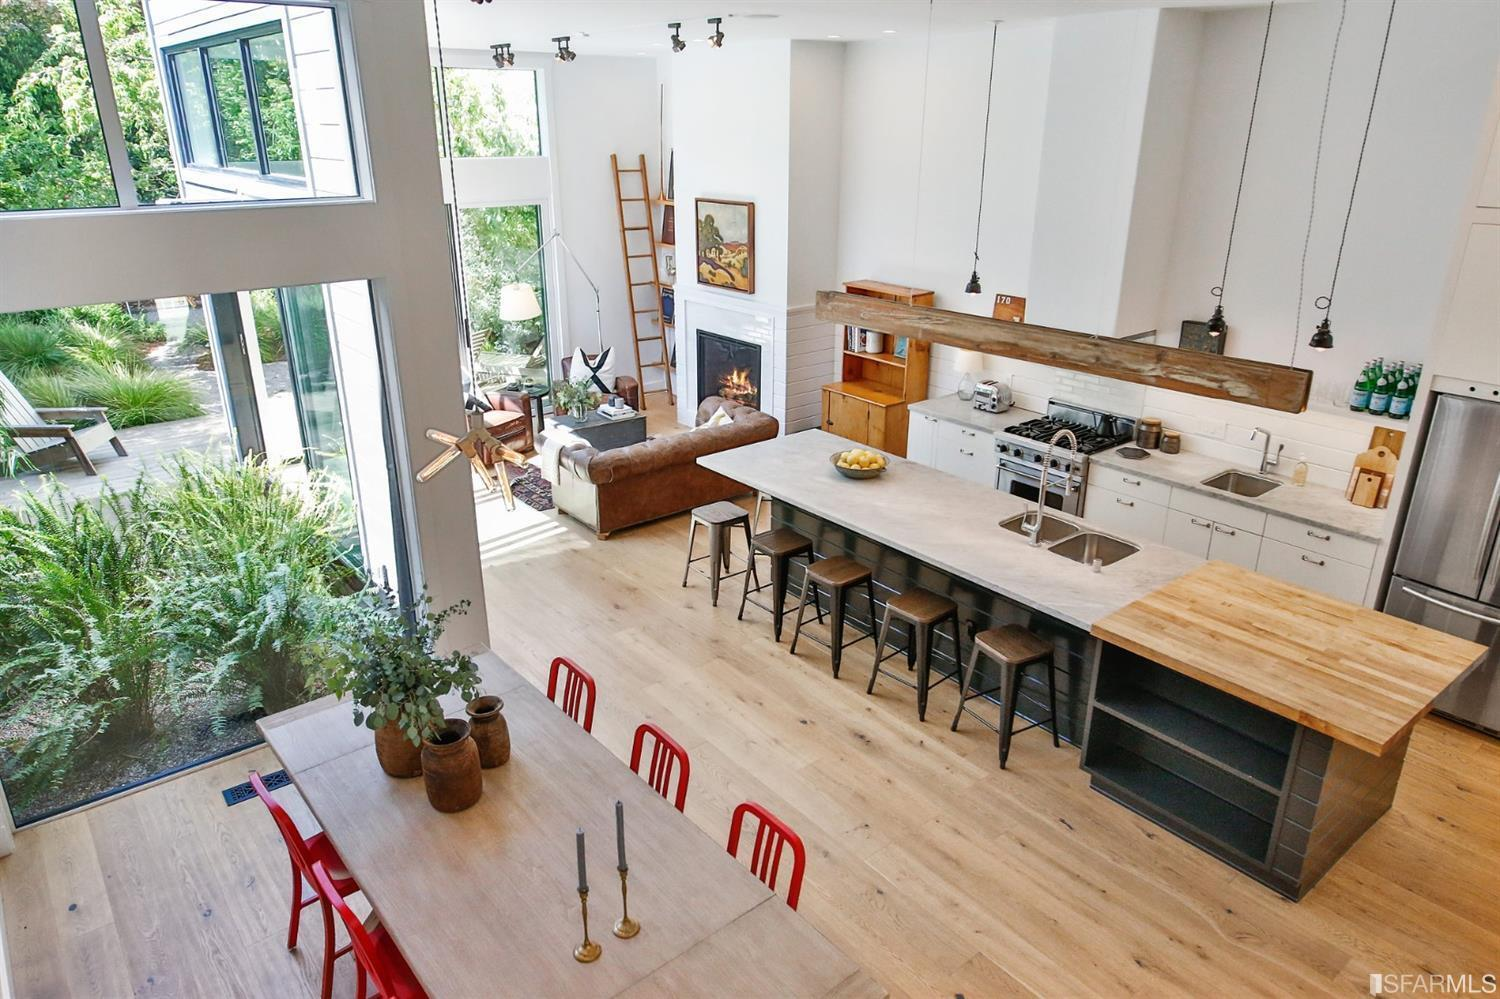 Aerial view of chic white kitchen and living room with floor to ceiling windows